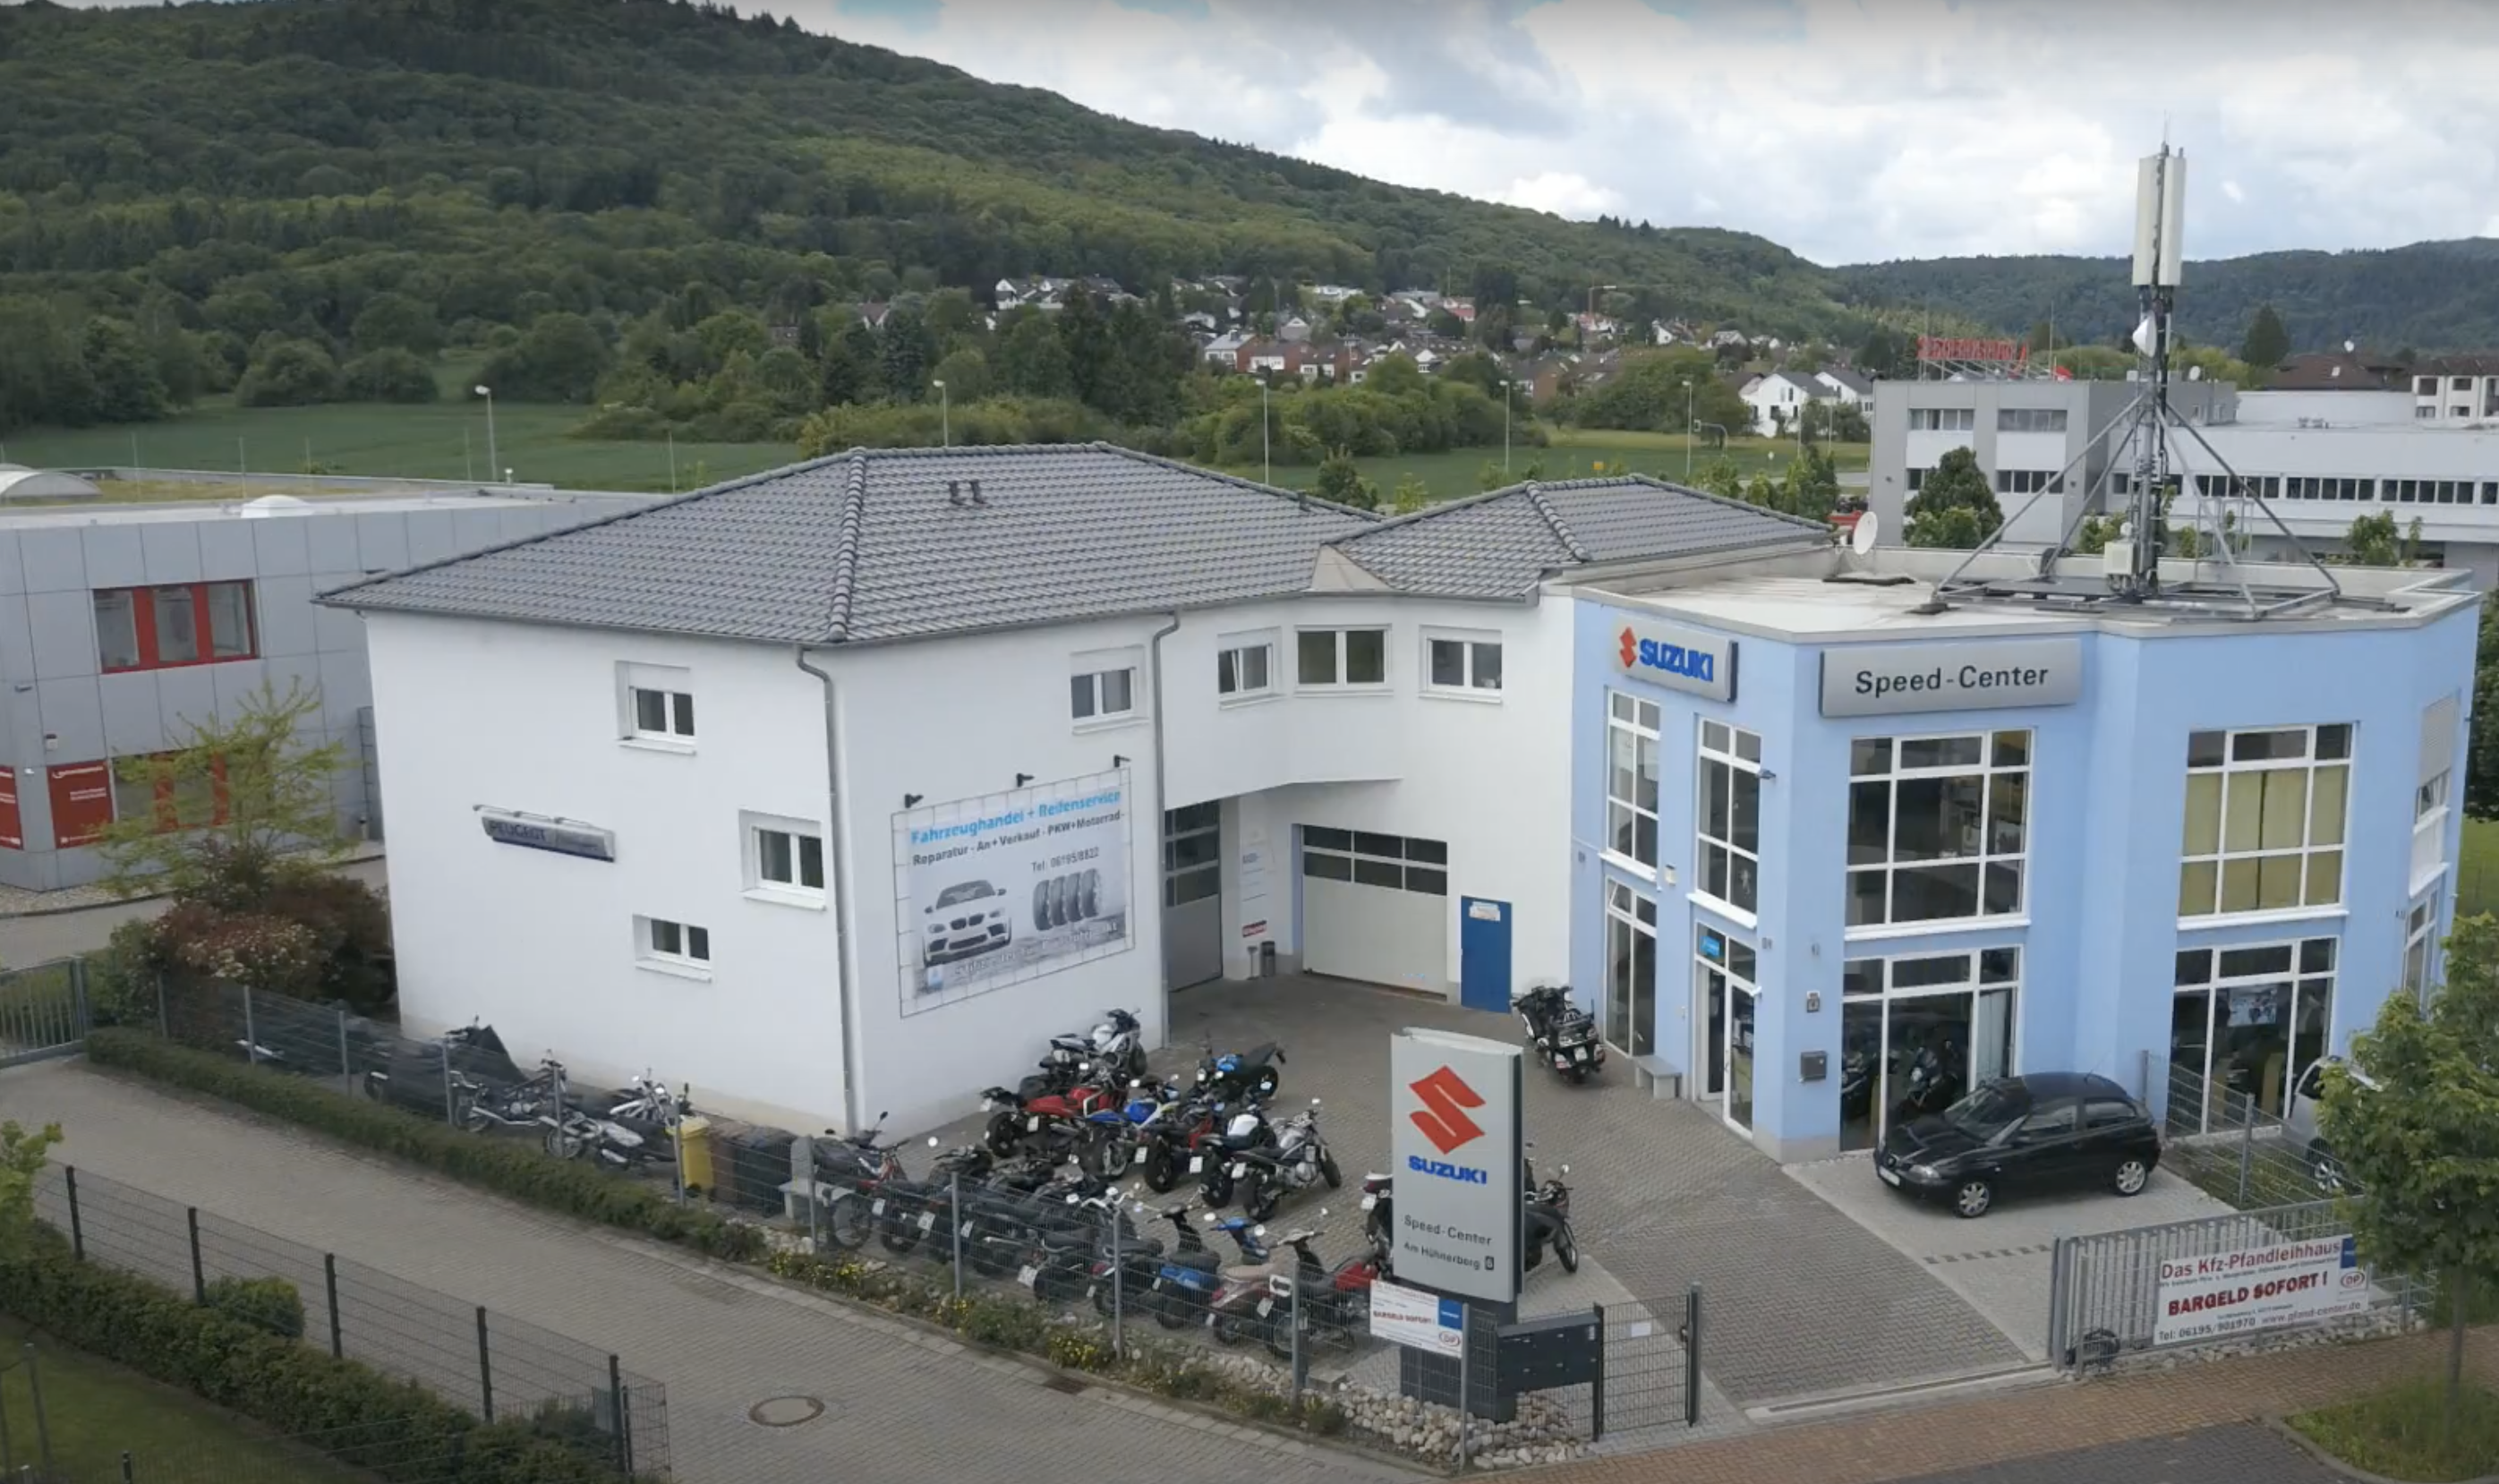 Suzuki Speed Center Kelkheim